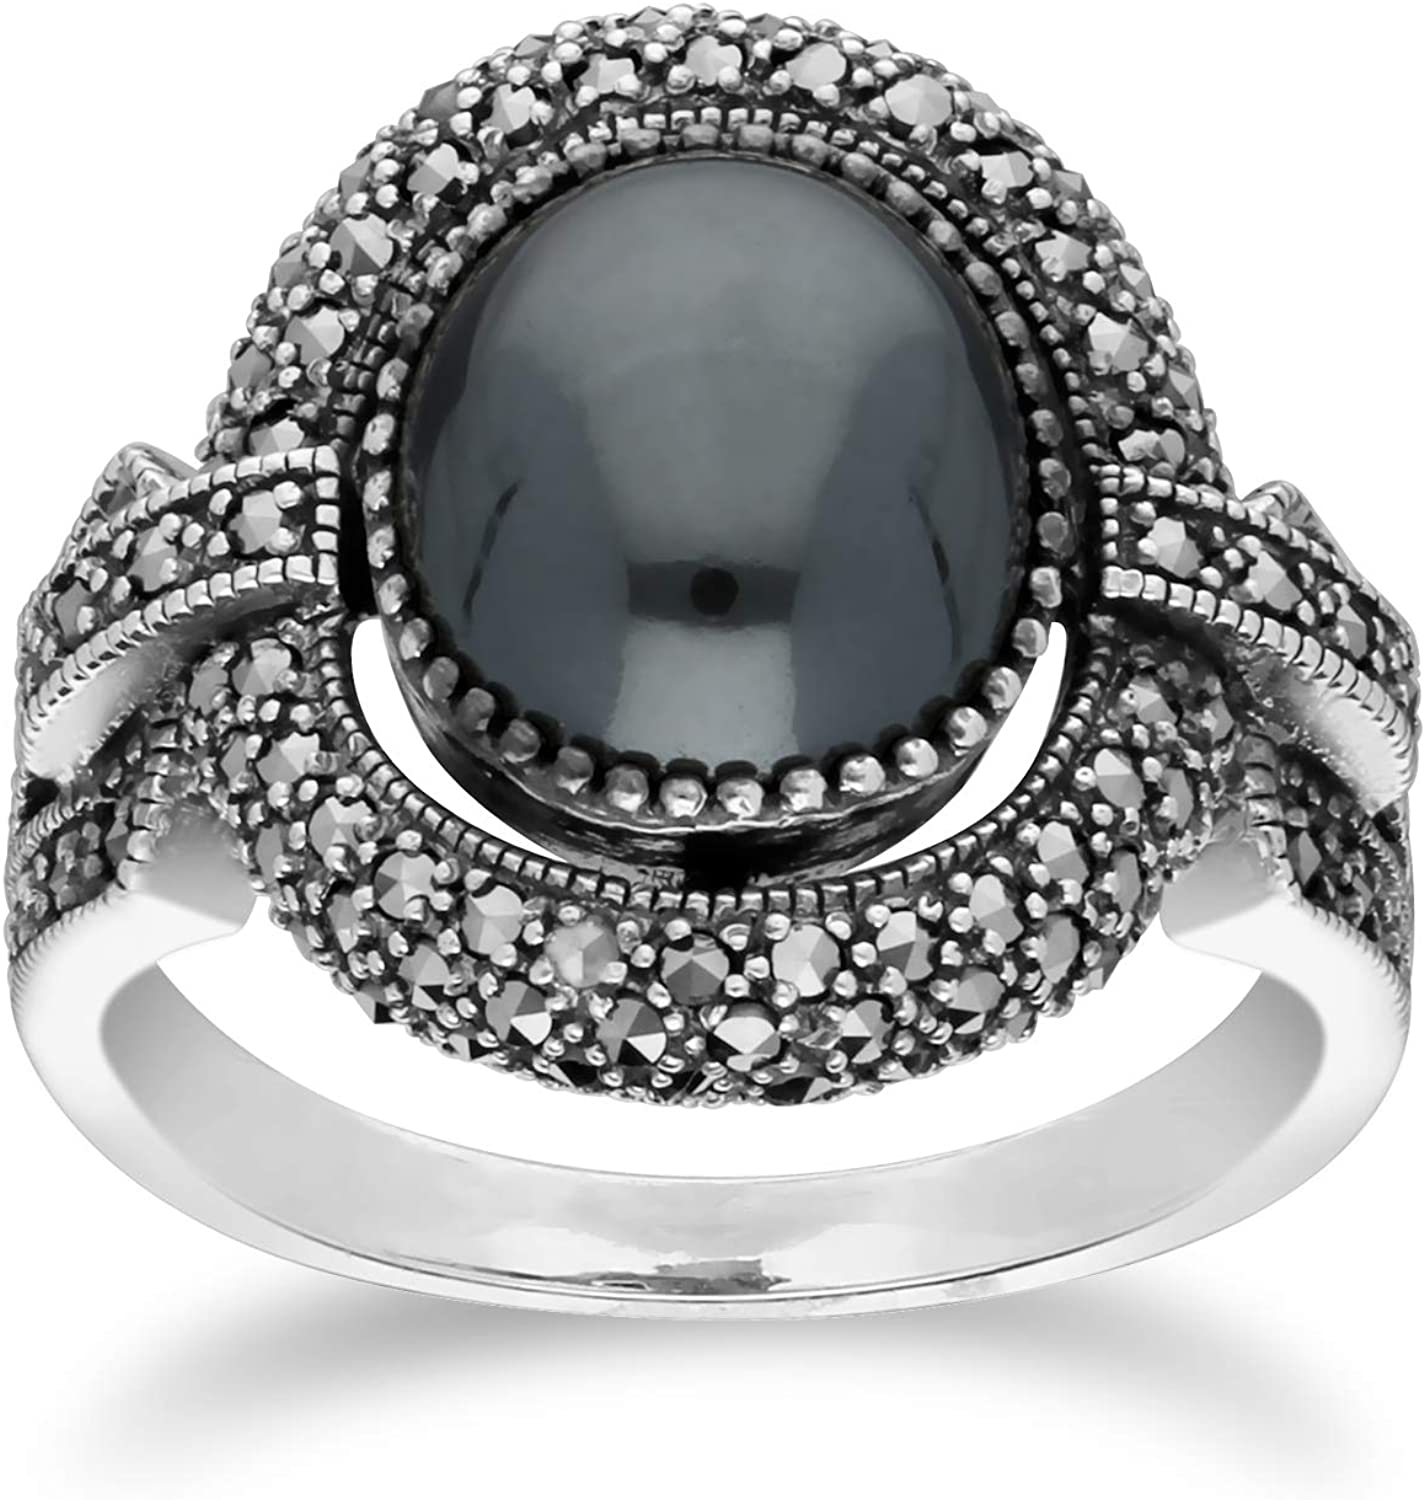 Sterling Silver Marcasite Ring with Popular brand Cabochon Hematine Sales Oval Size